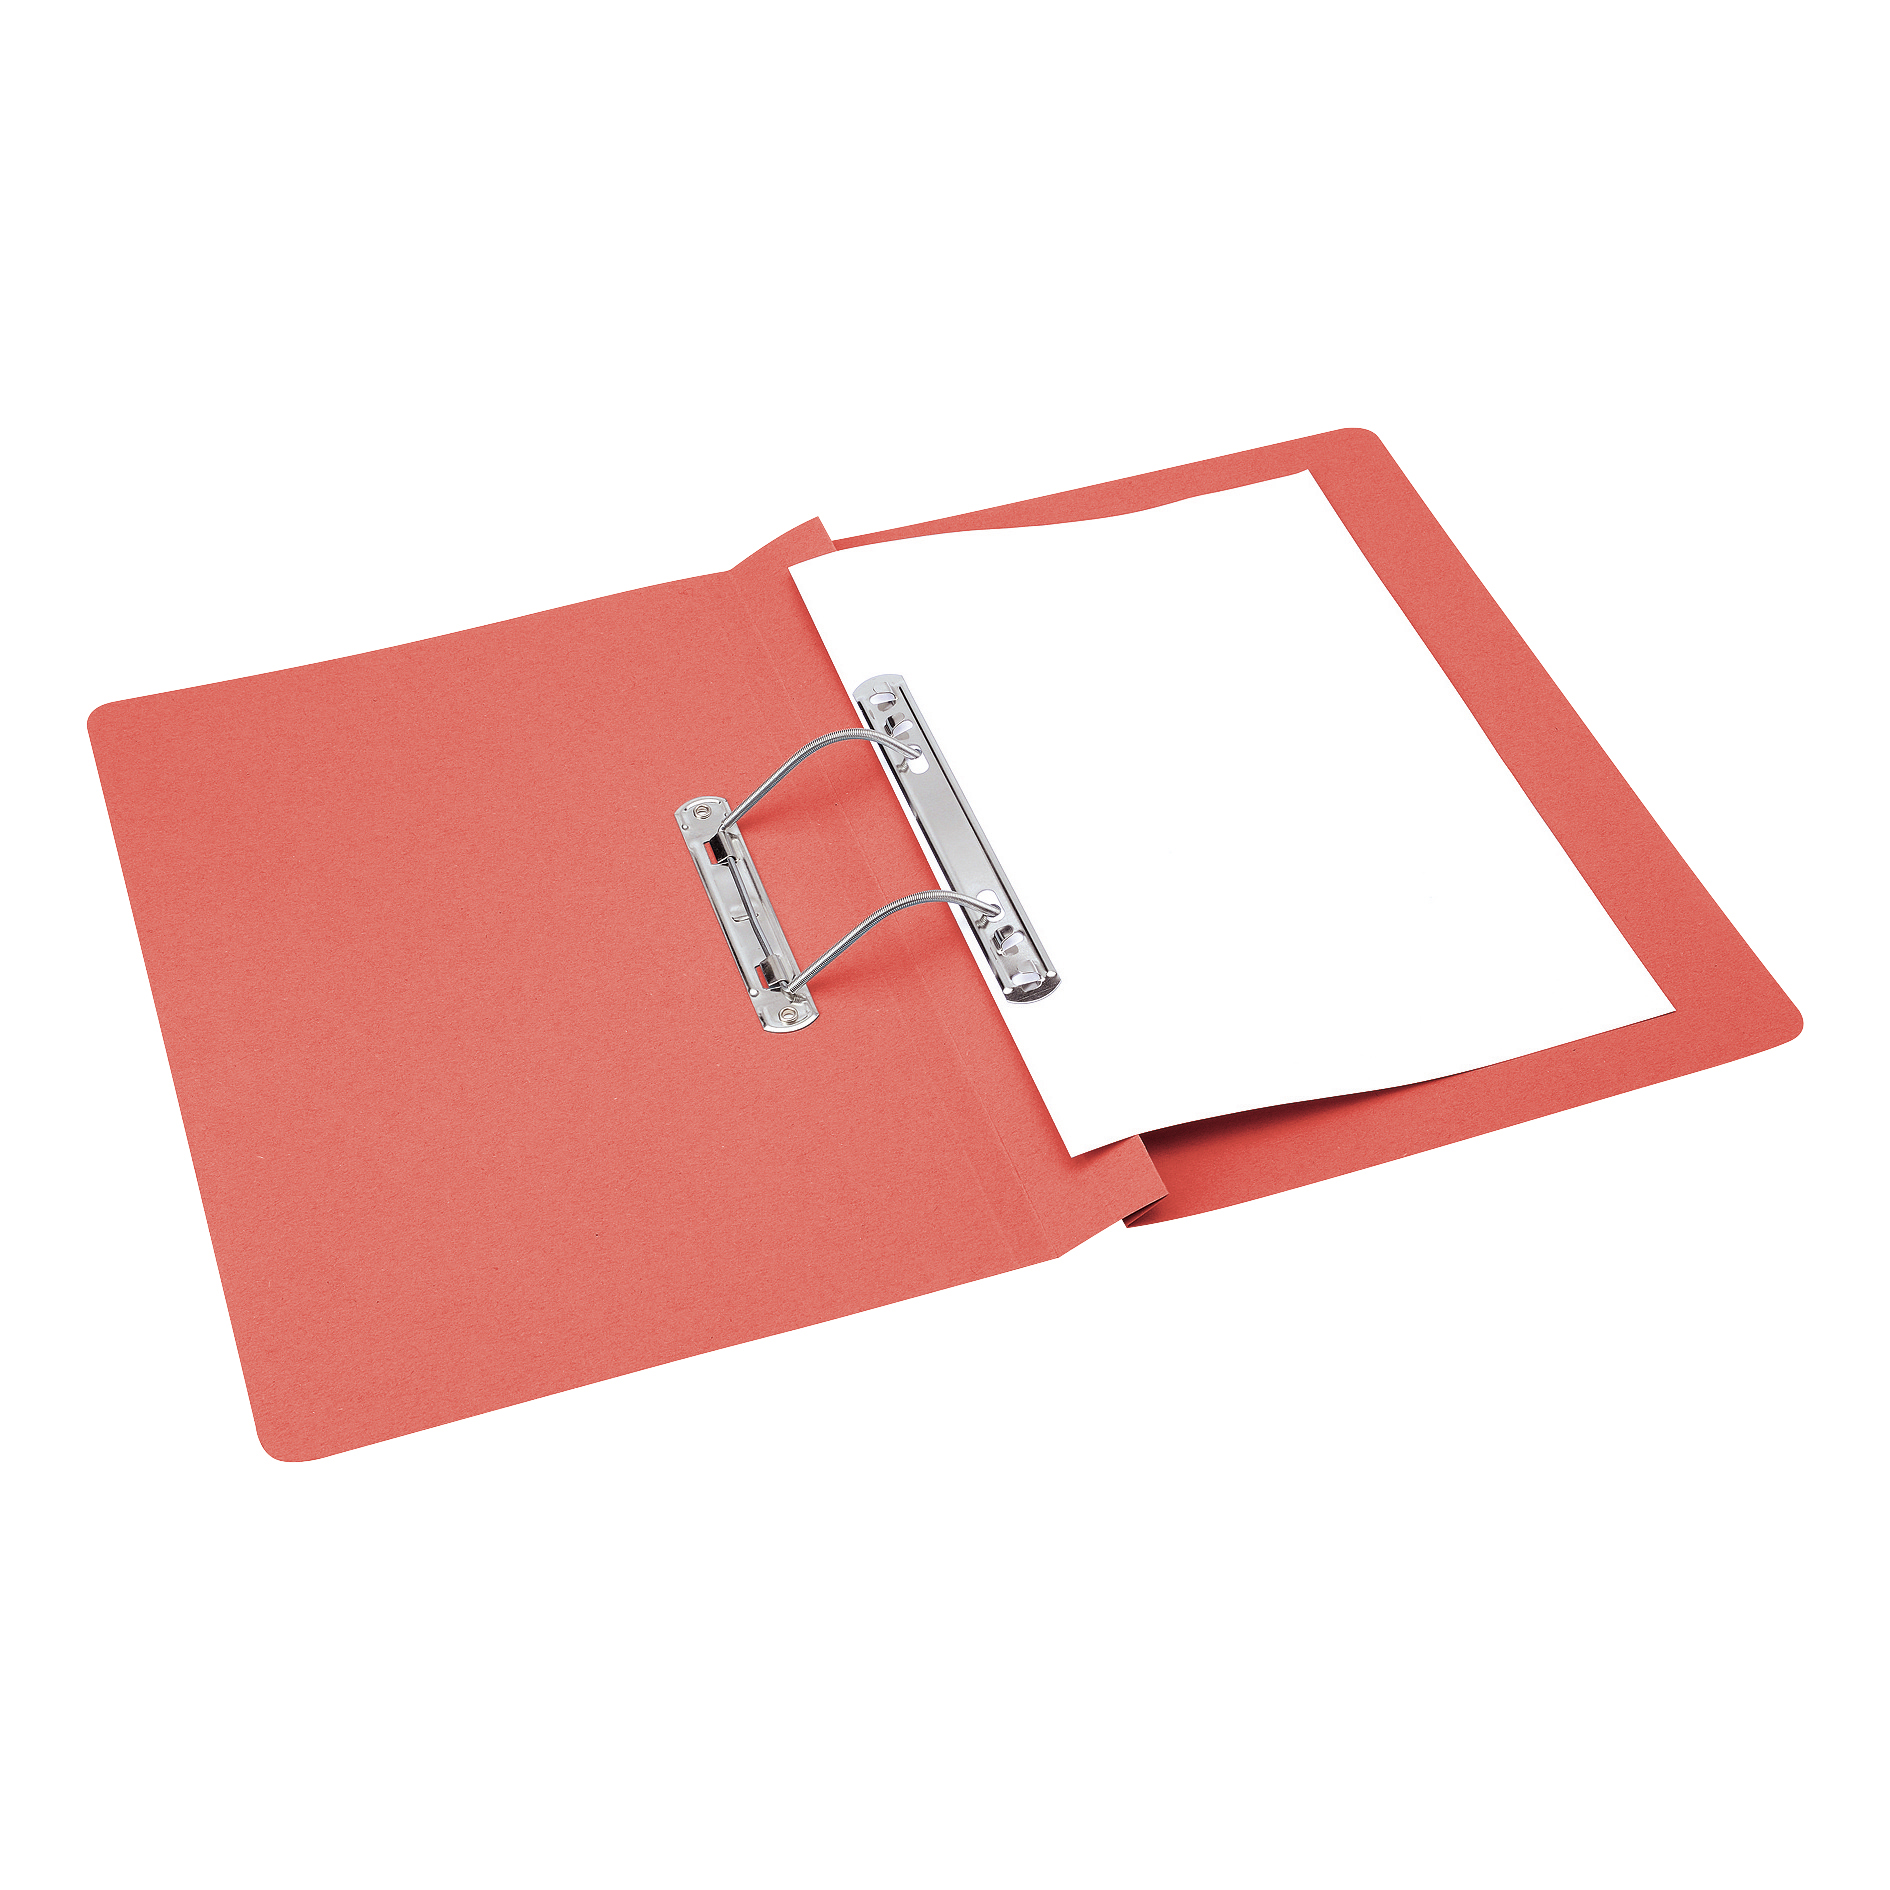 Spring Files 5 Star Office Transfer Spring File Mediumweight 285gsm Capacity 38mm Foolscap Red Pack 50